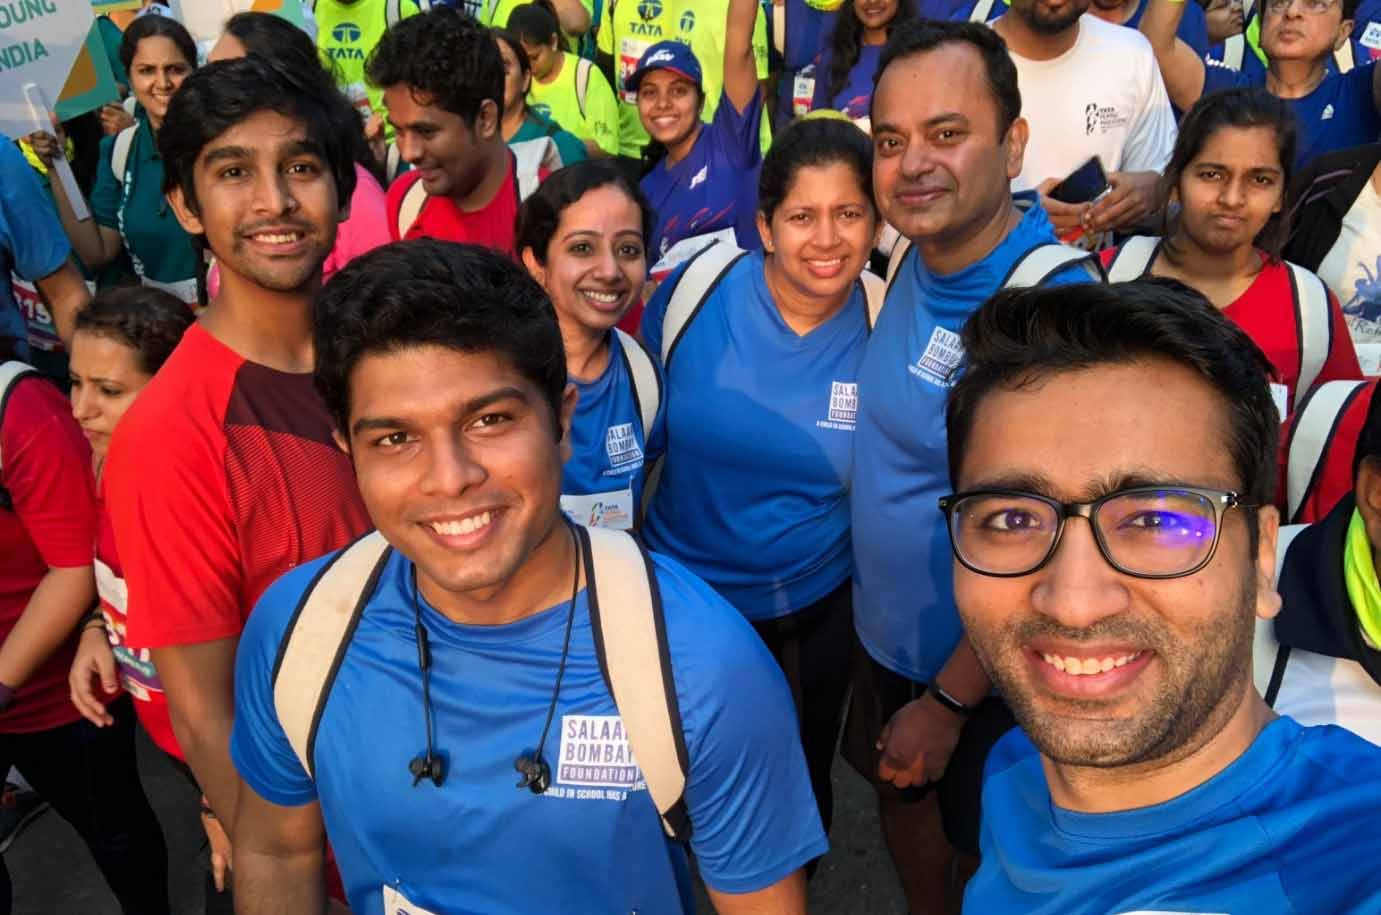 Employees in Mumbai Run the Tata Mumbai Marathon to Raise Funds for Salaam Bombay Foundation